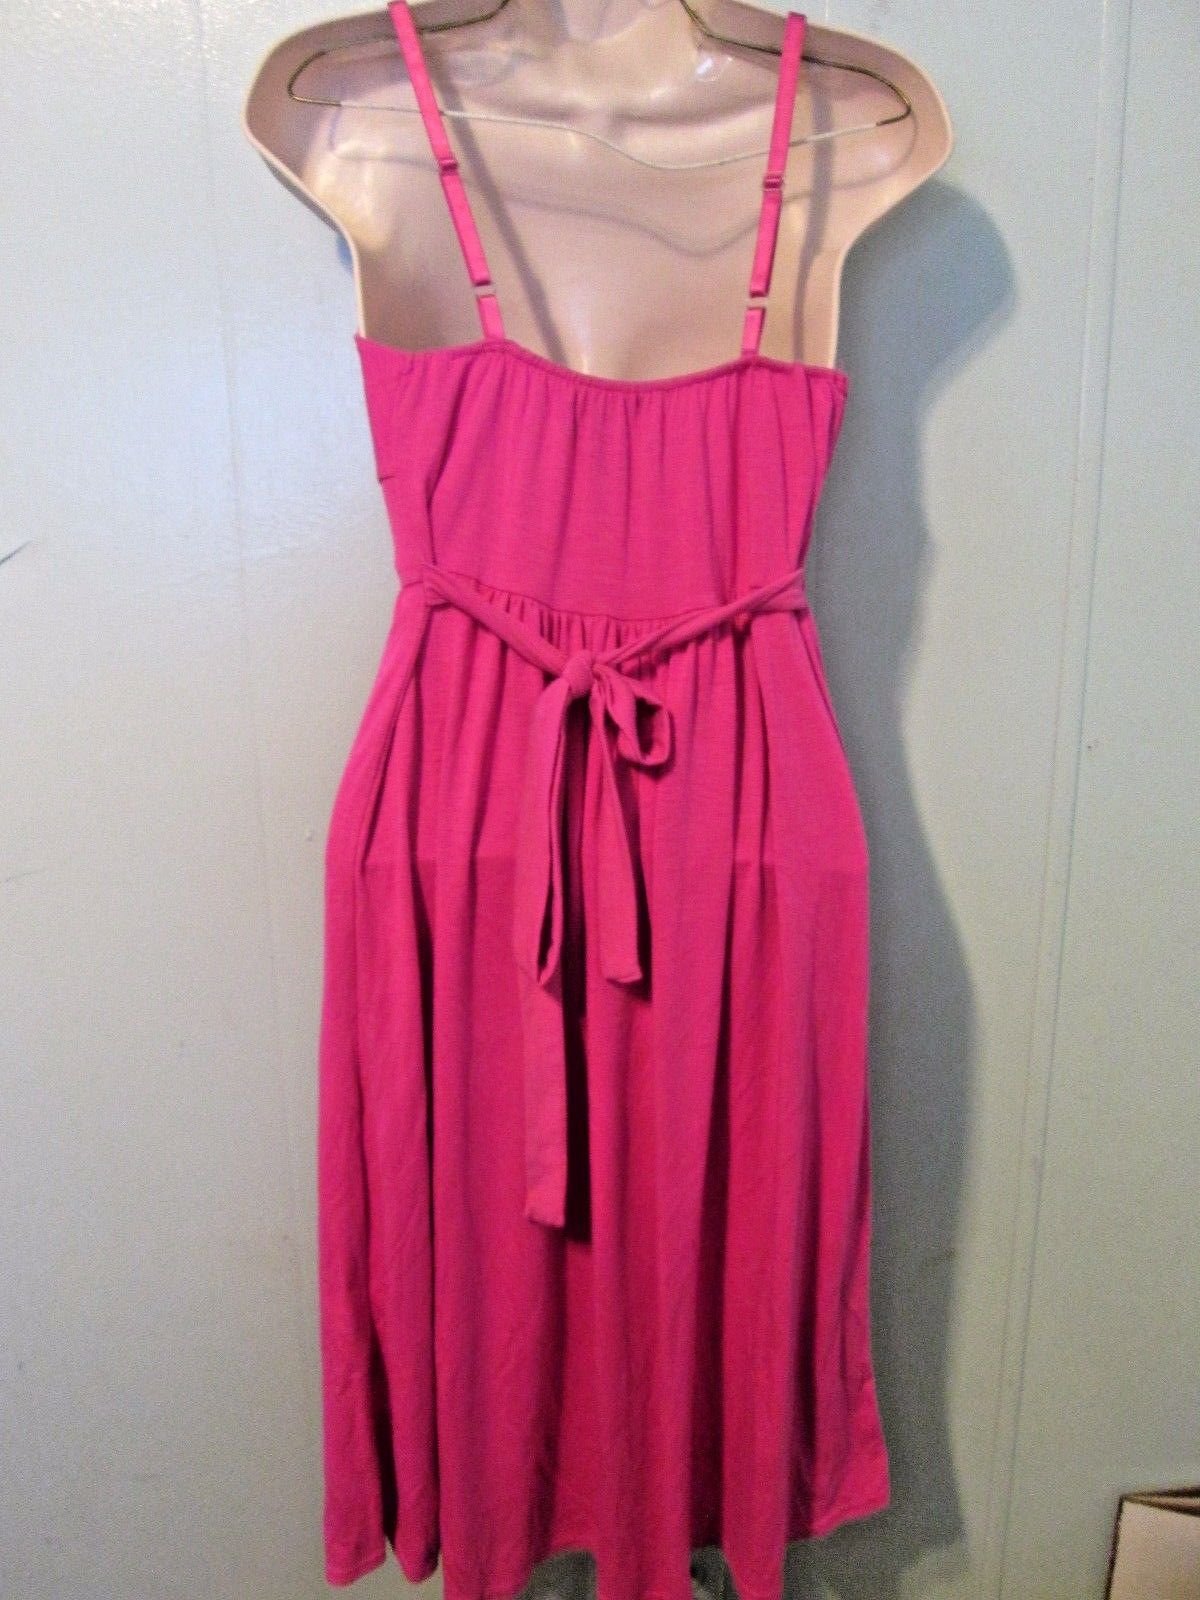 Ladies Size large L rose pink spaghetti strap dress by Planet Gold MSW105